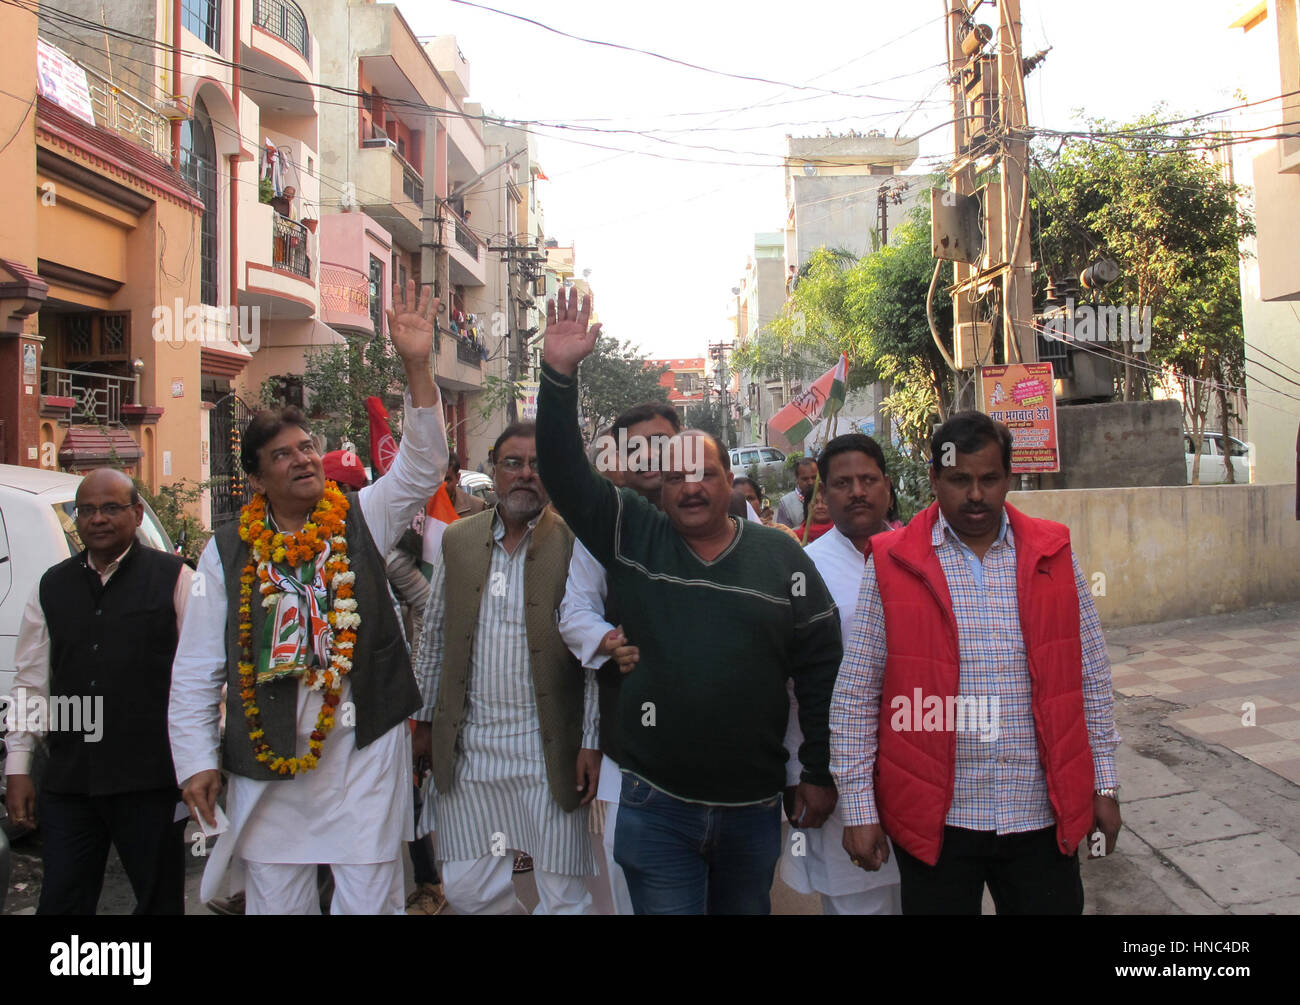 Uttar Pradesh, India. 8th Feb, 2017. KK Sharma (2nd l), candidate of the Indian National Congress party, visits - Stock Image